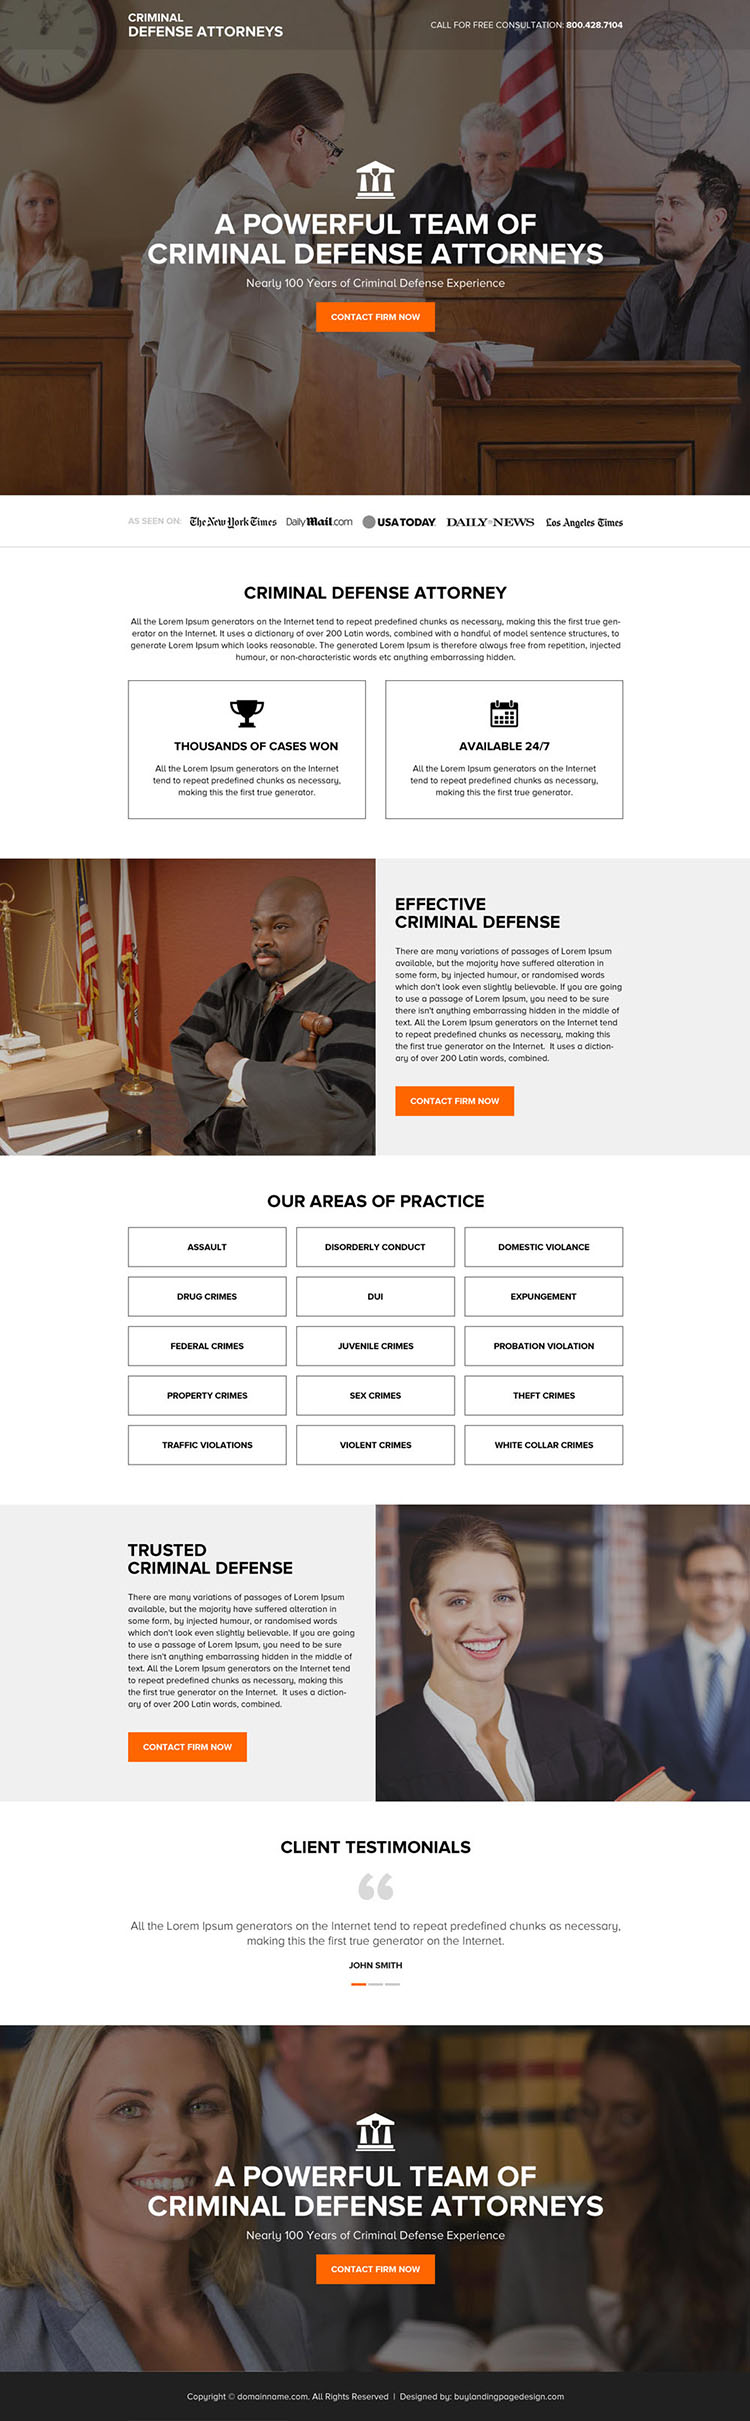 criminal defense attorney firm responsive landing page